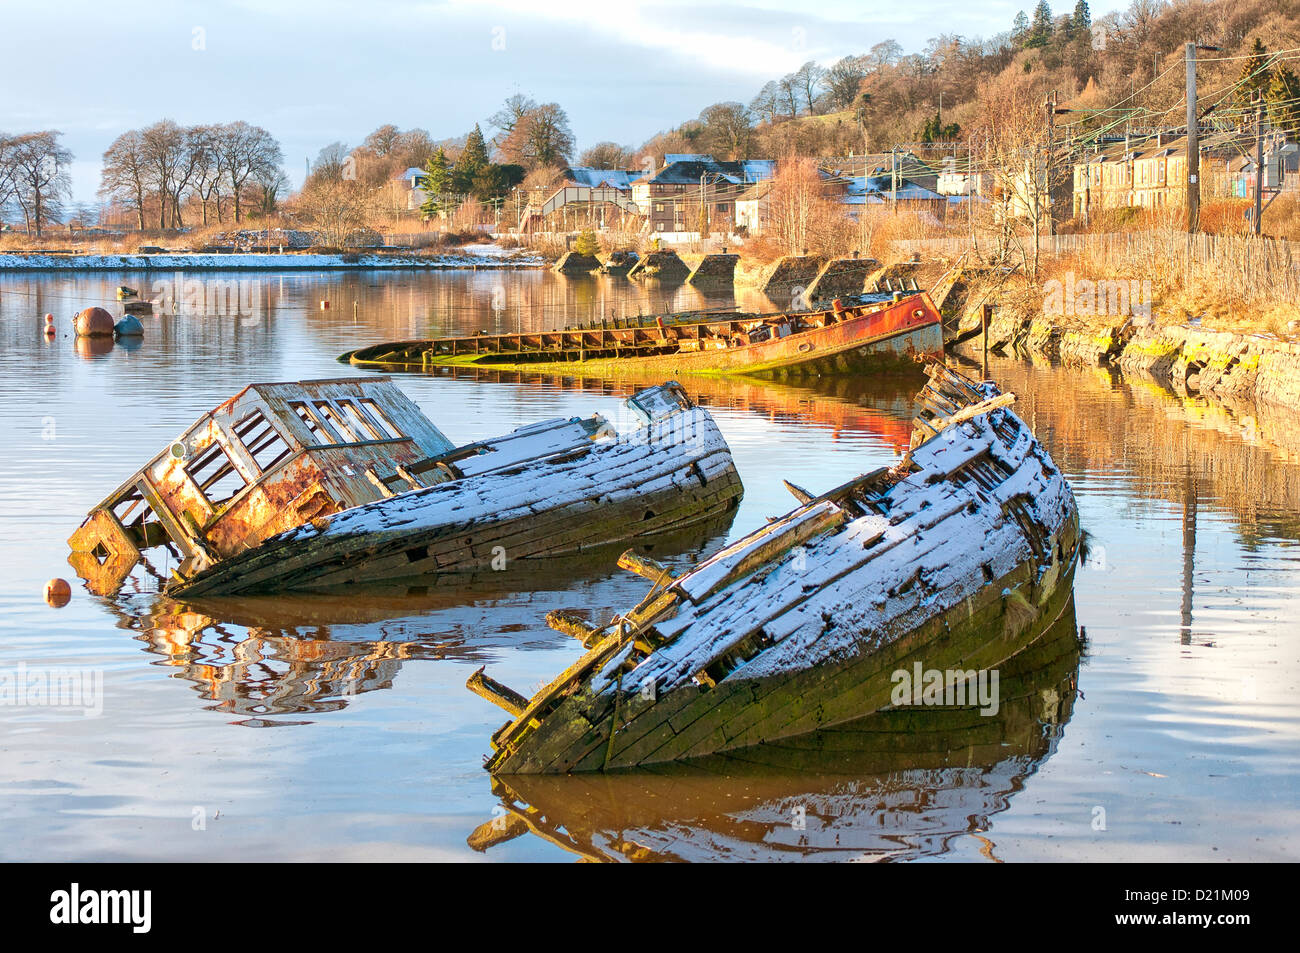 Sunken fishing boats lined up in the scottish harbour at Bowling. - Stock Image